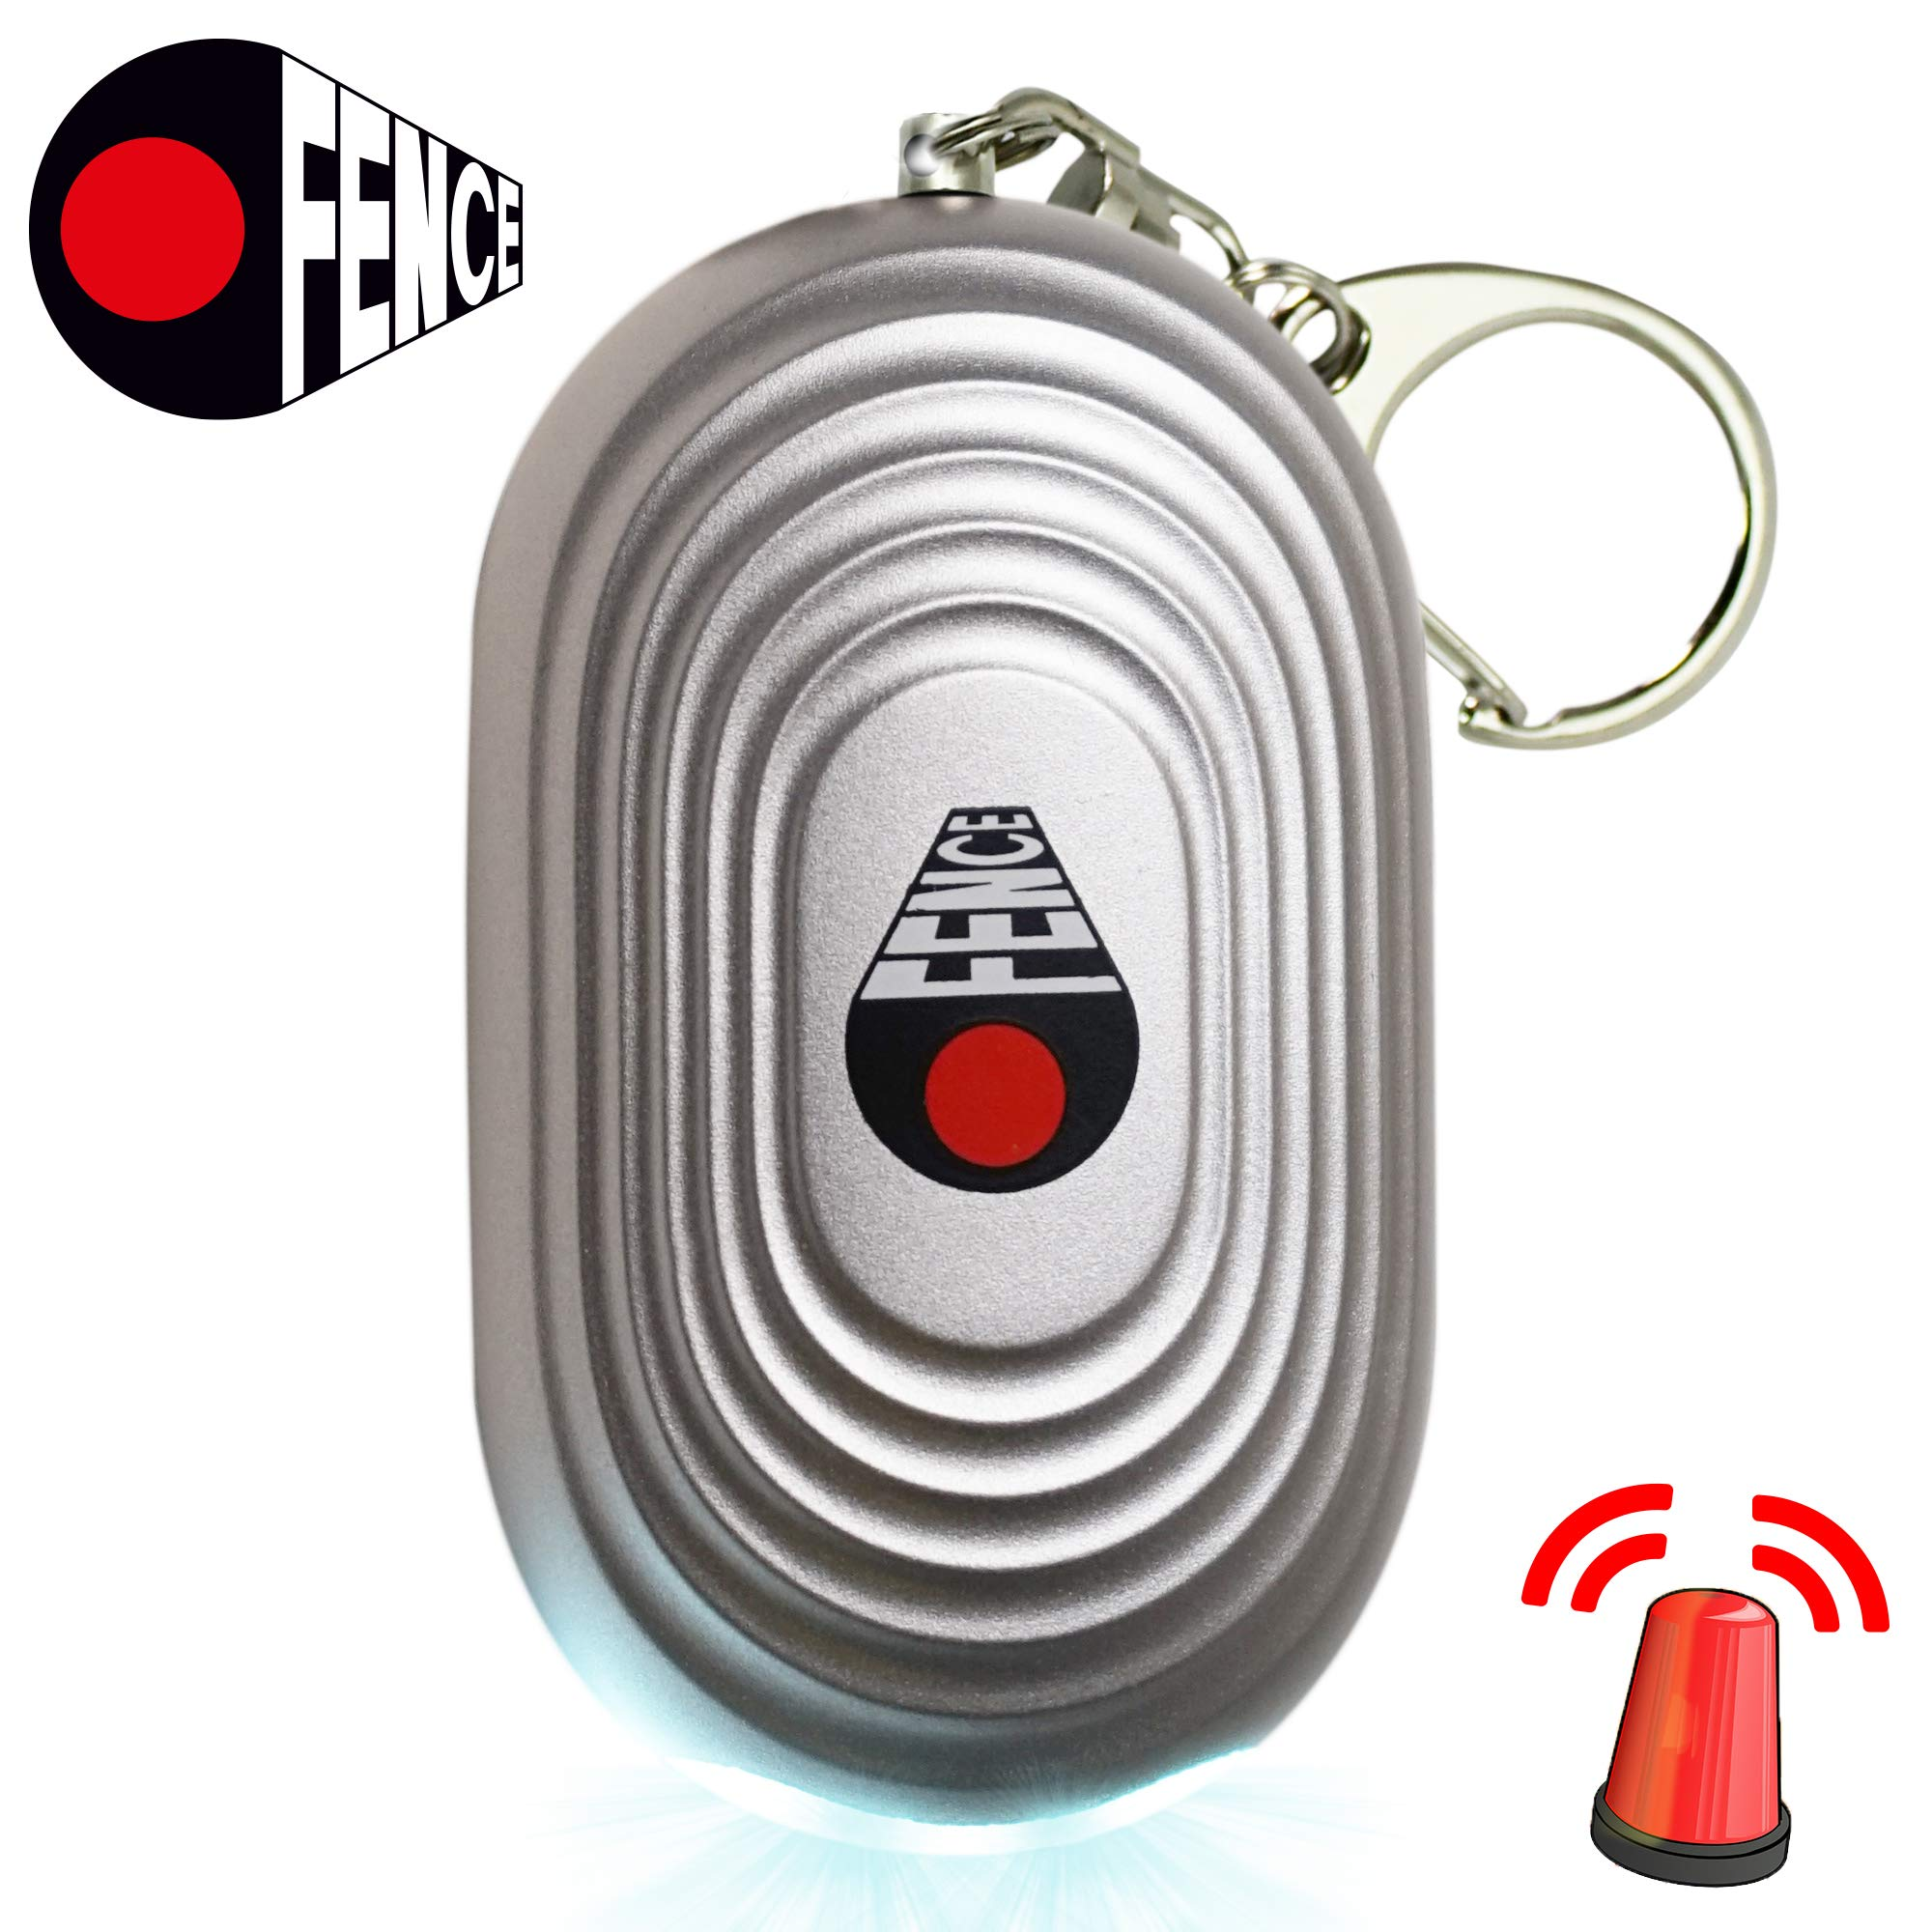 5b9e44fc6fe743 Details about Personal Alarm Keychain - Self Defense and Safesound Security  Emergency 130dB